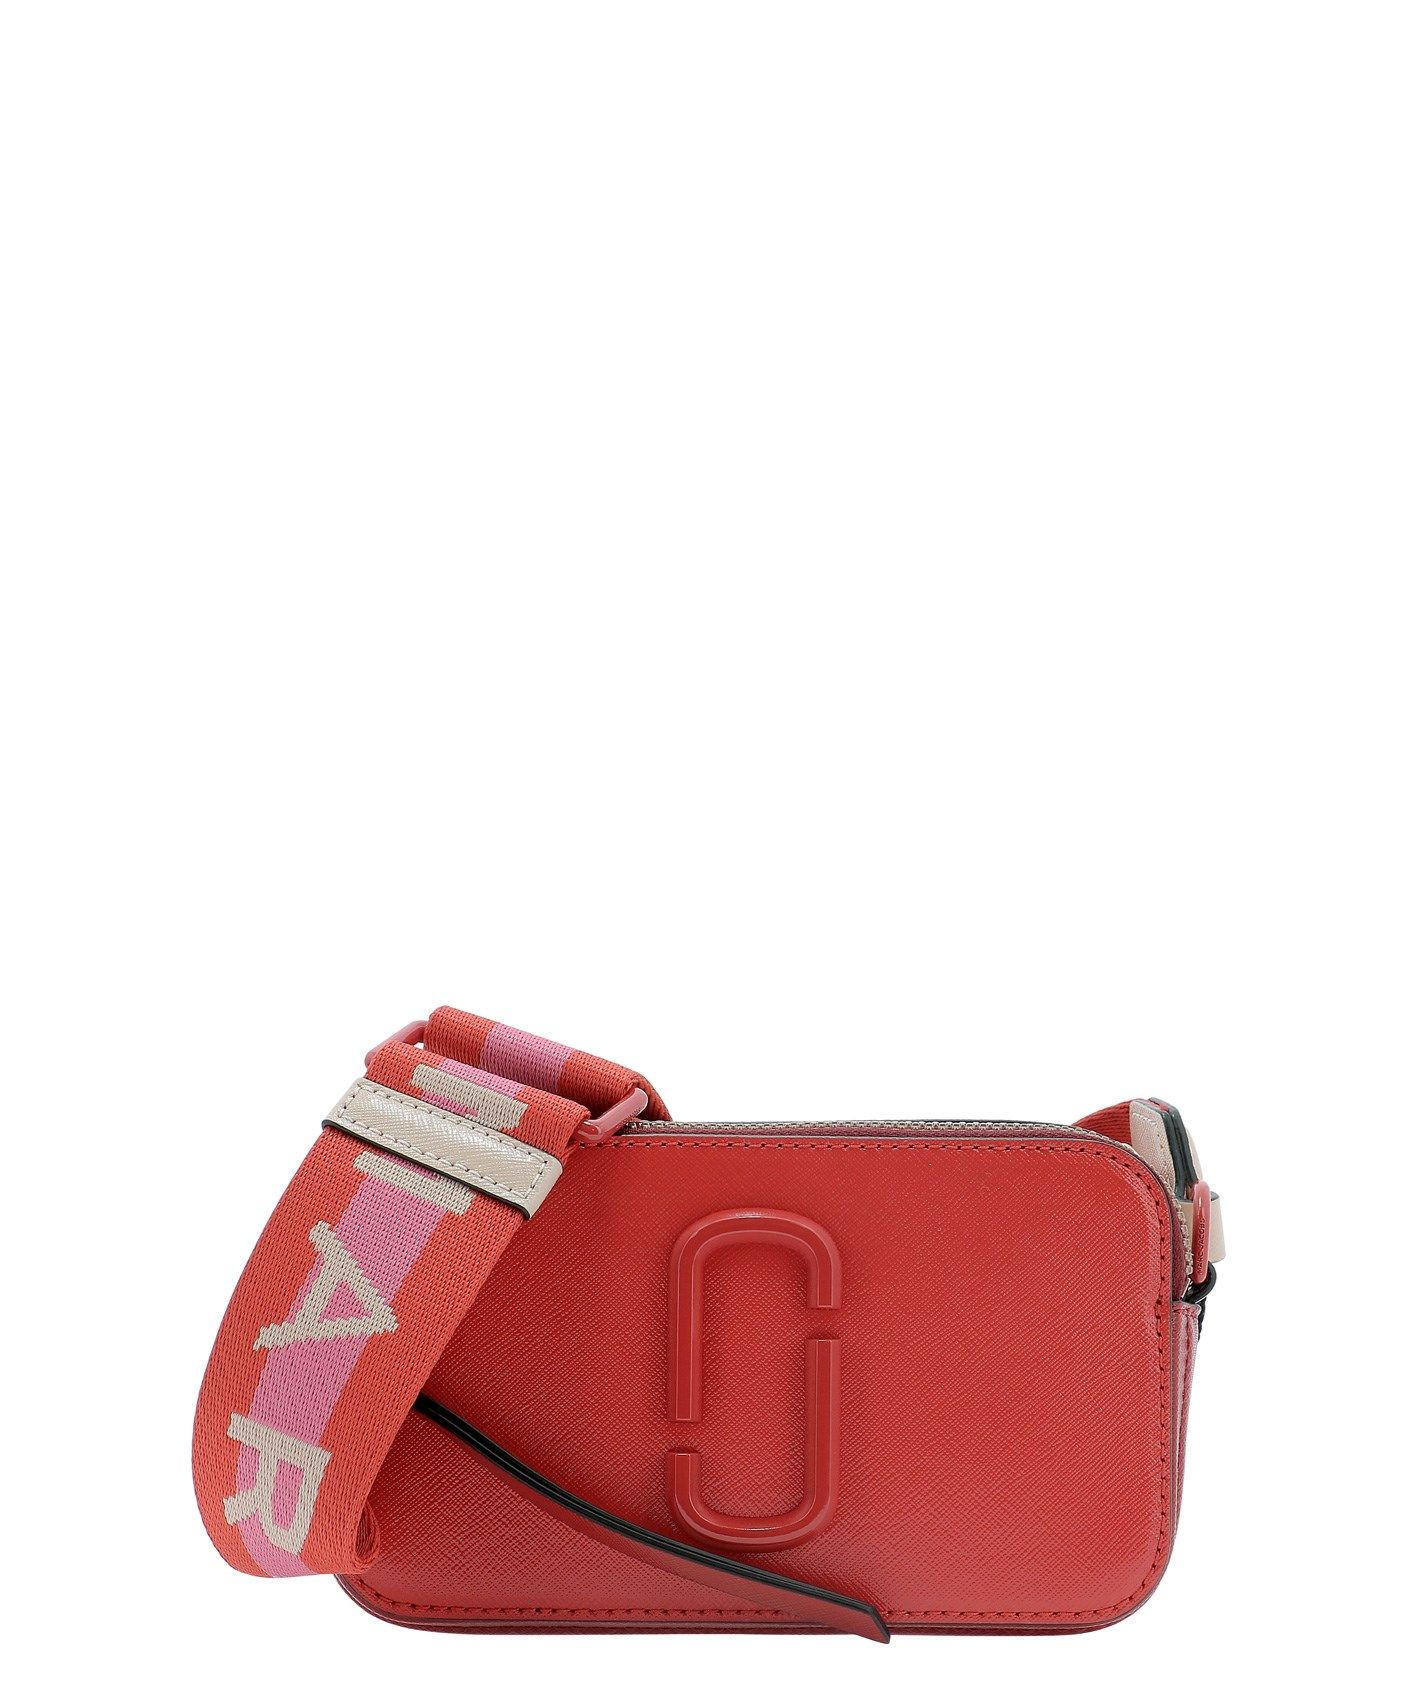 Marc Jacobs MARC JACOBS WOMEN'S M0014538937 RED OTHER MATERIALS SHOULDER BAG